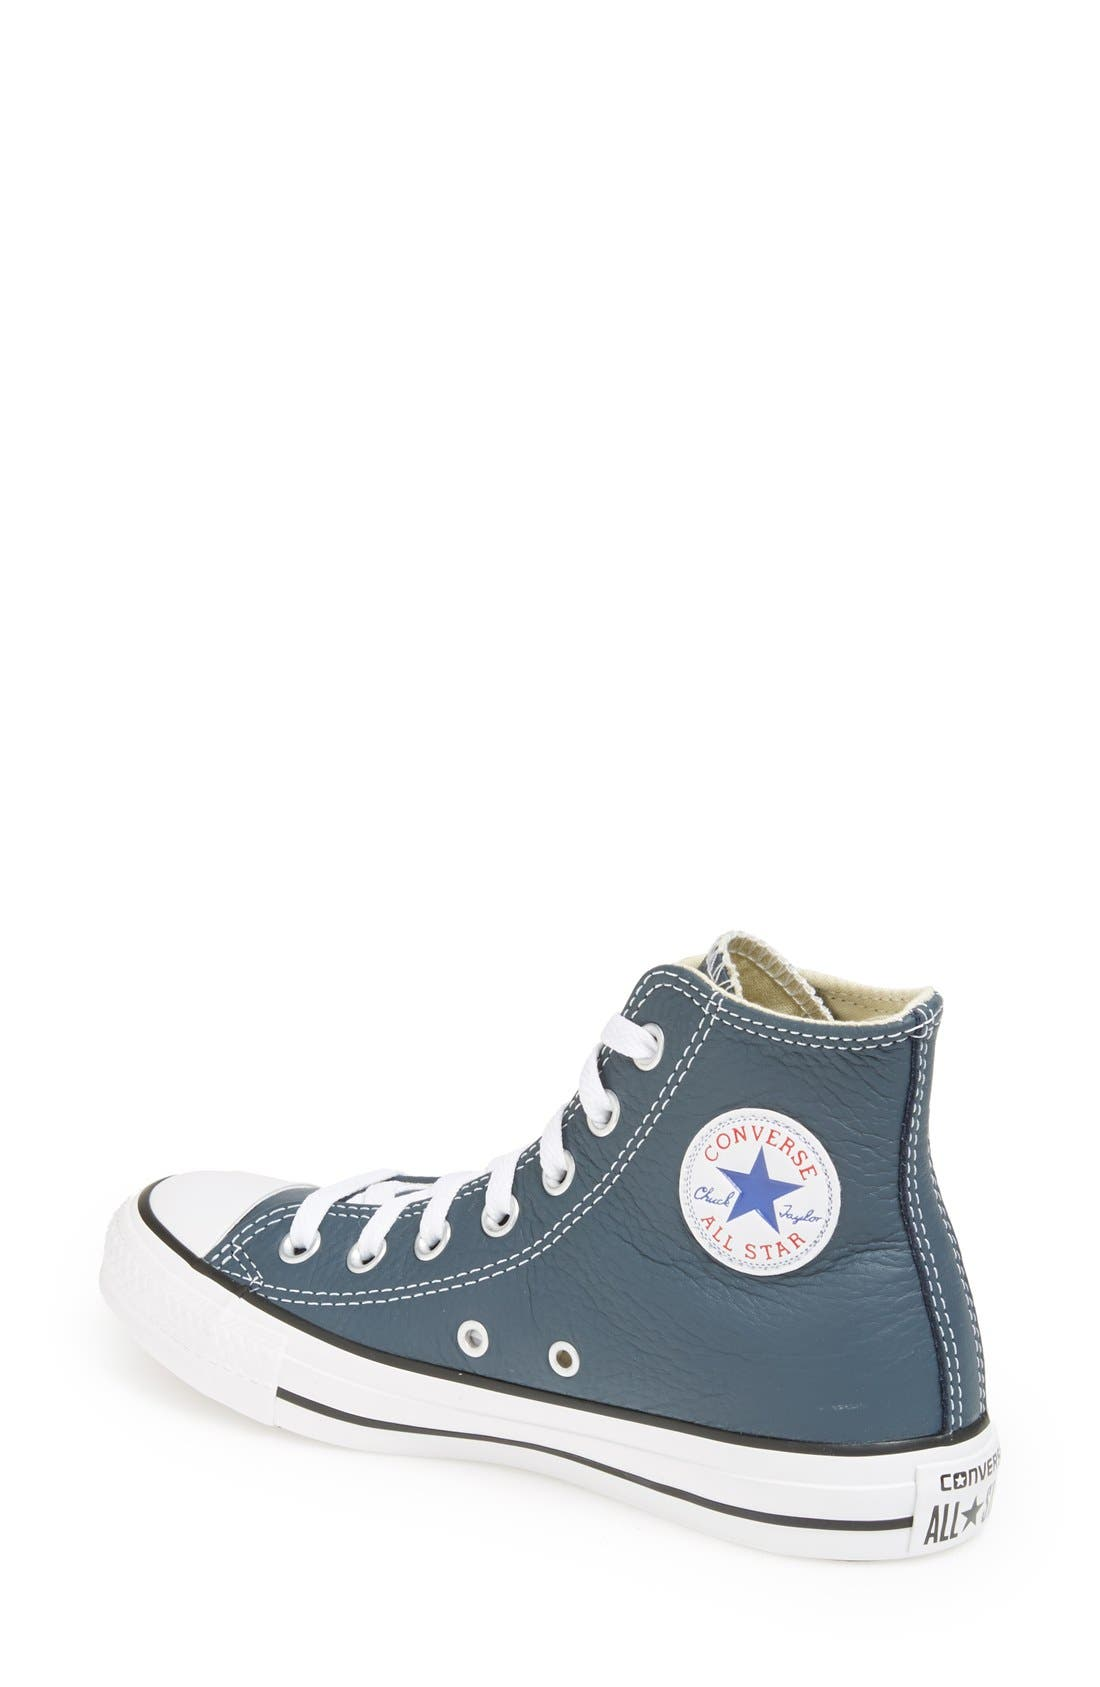 Alternate Image 2  - Converse Chuck Taylor® All Star® High Top Leather Sneaker (Women)